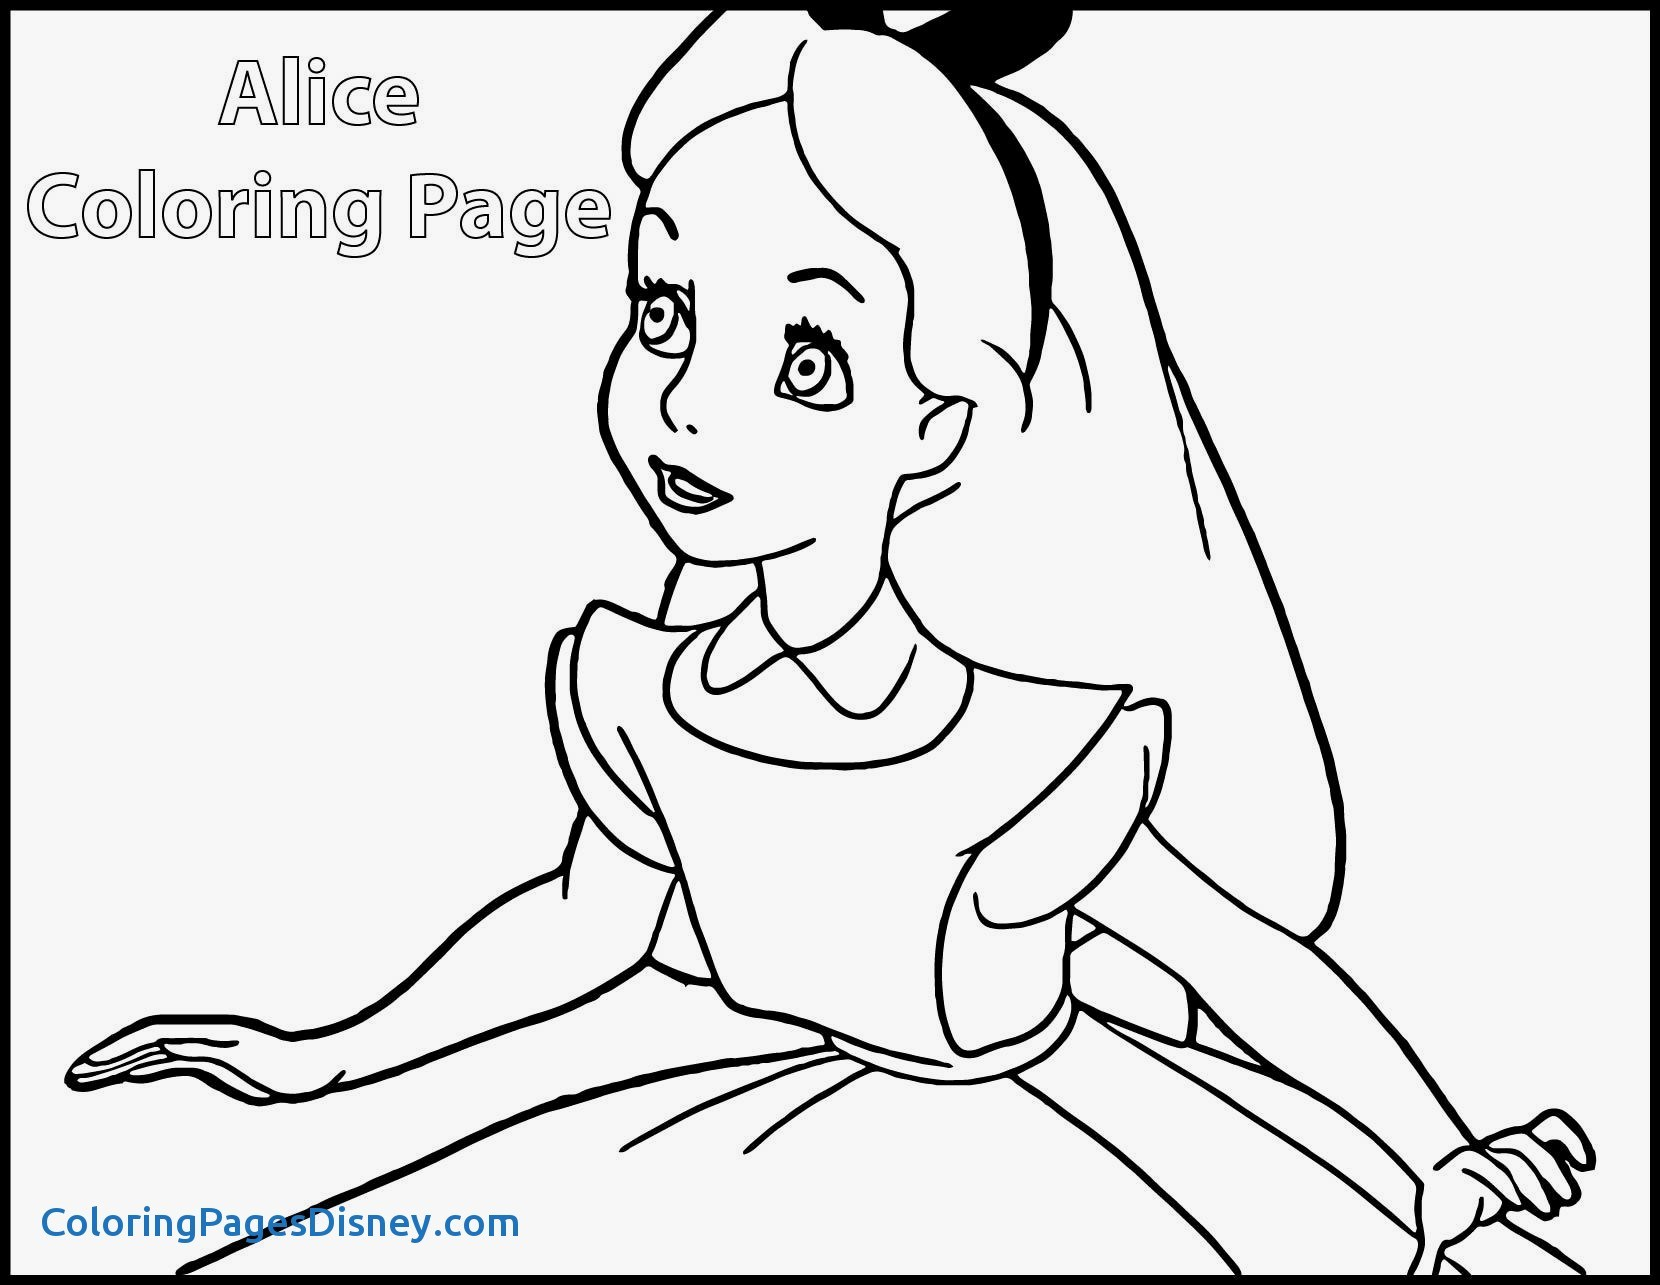 1660x1285 Luxury Alice In Wonderland Coloring Sheets Component